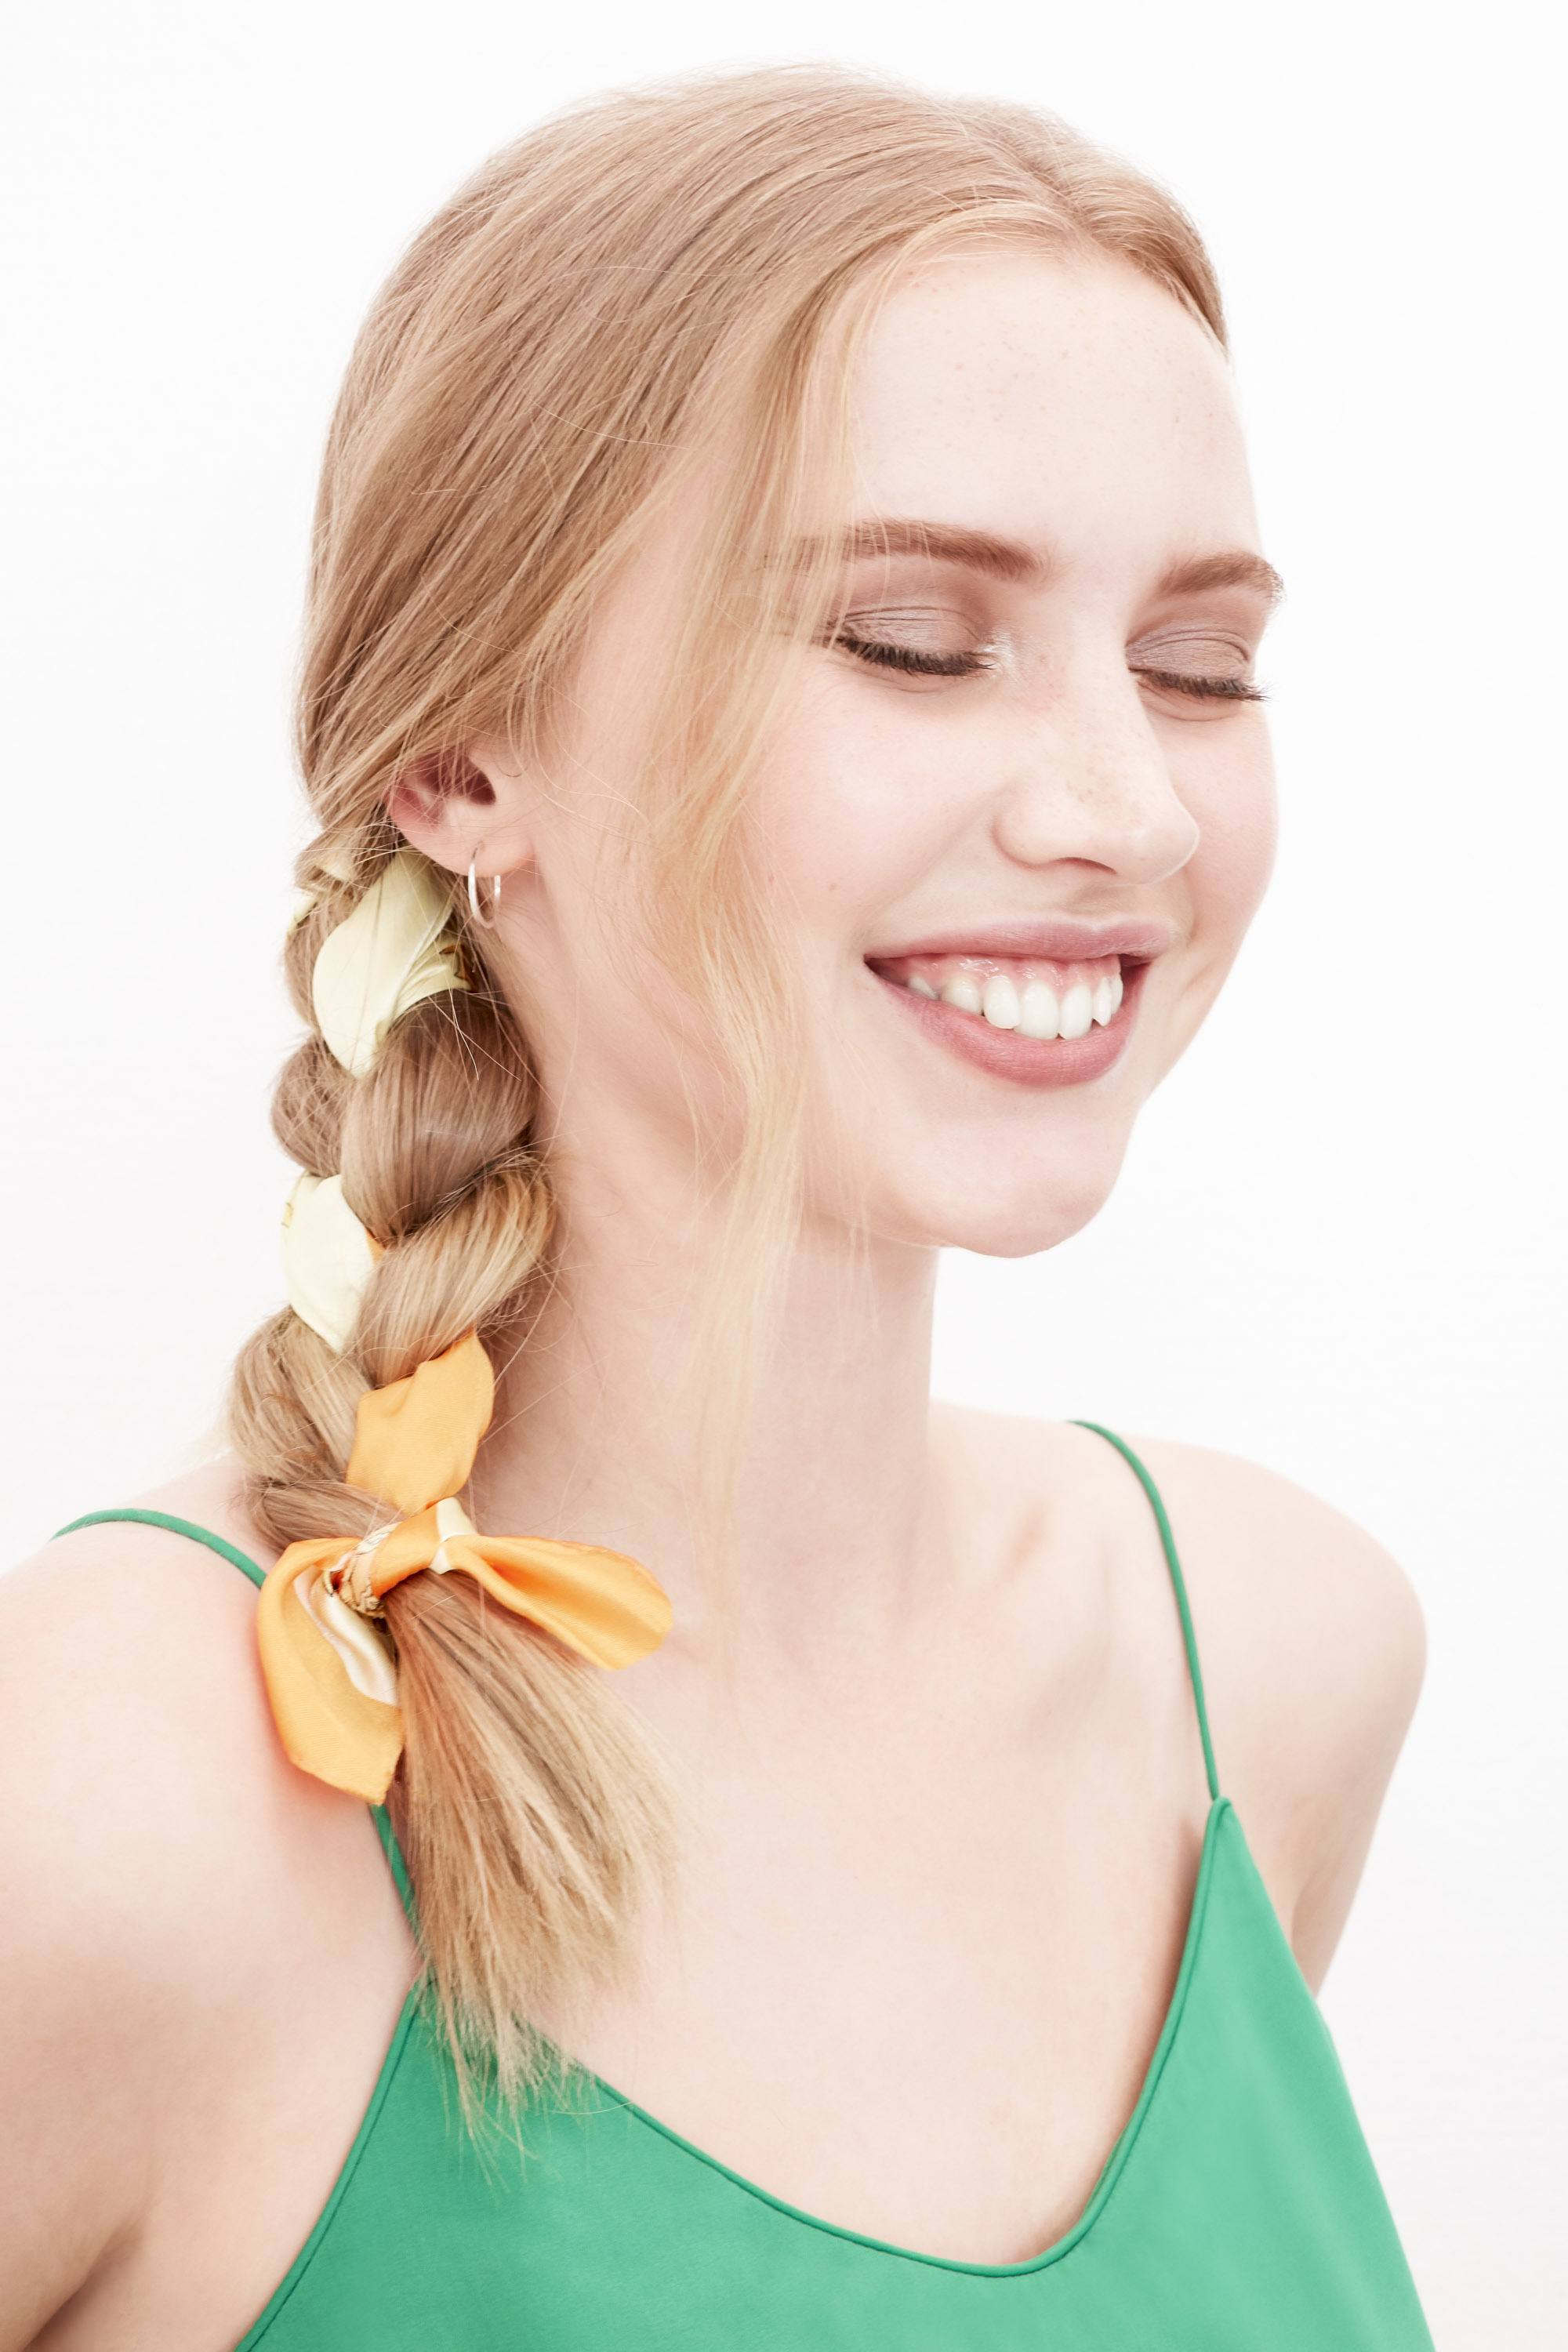 Easy braids for long hair: Photo of a blonde woman with a side braid with a yellow ribbon detail, wearing a green cami top